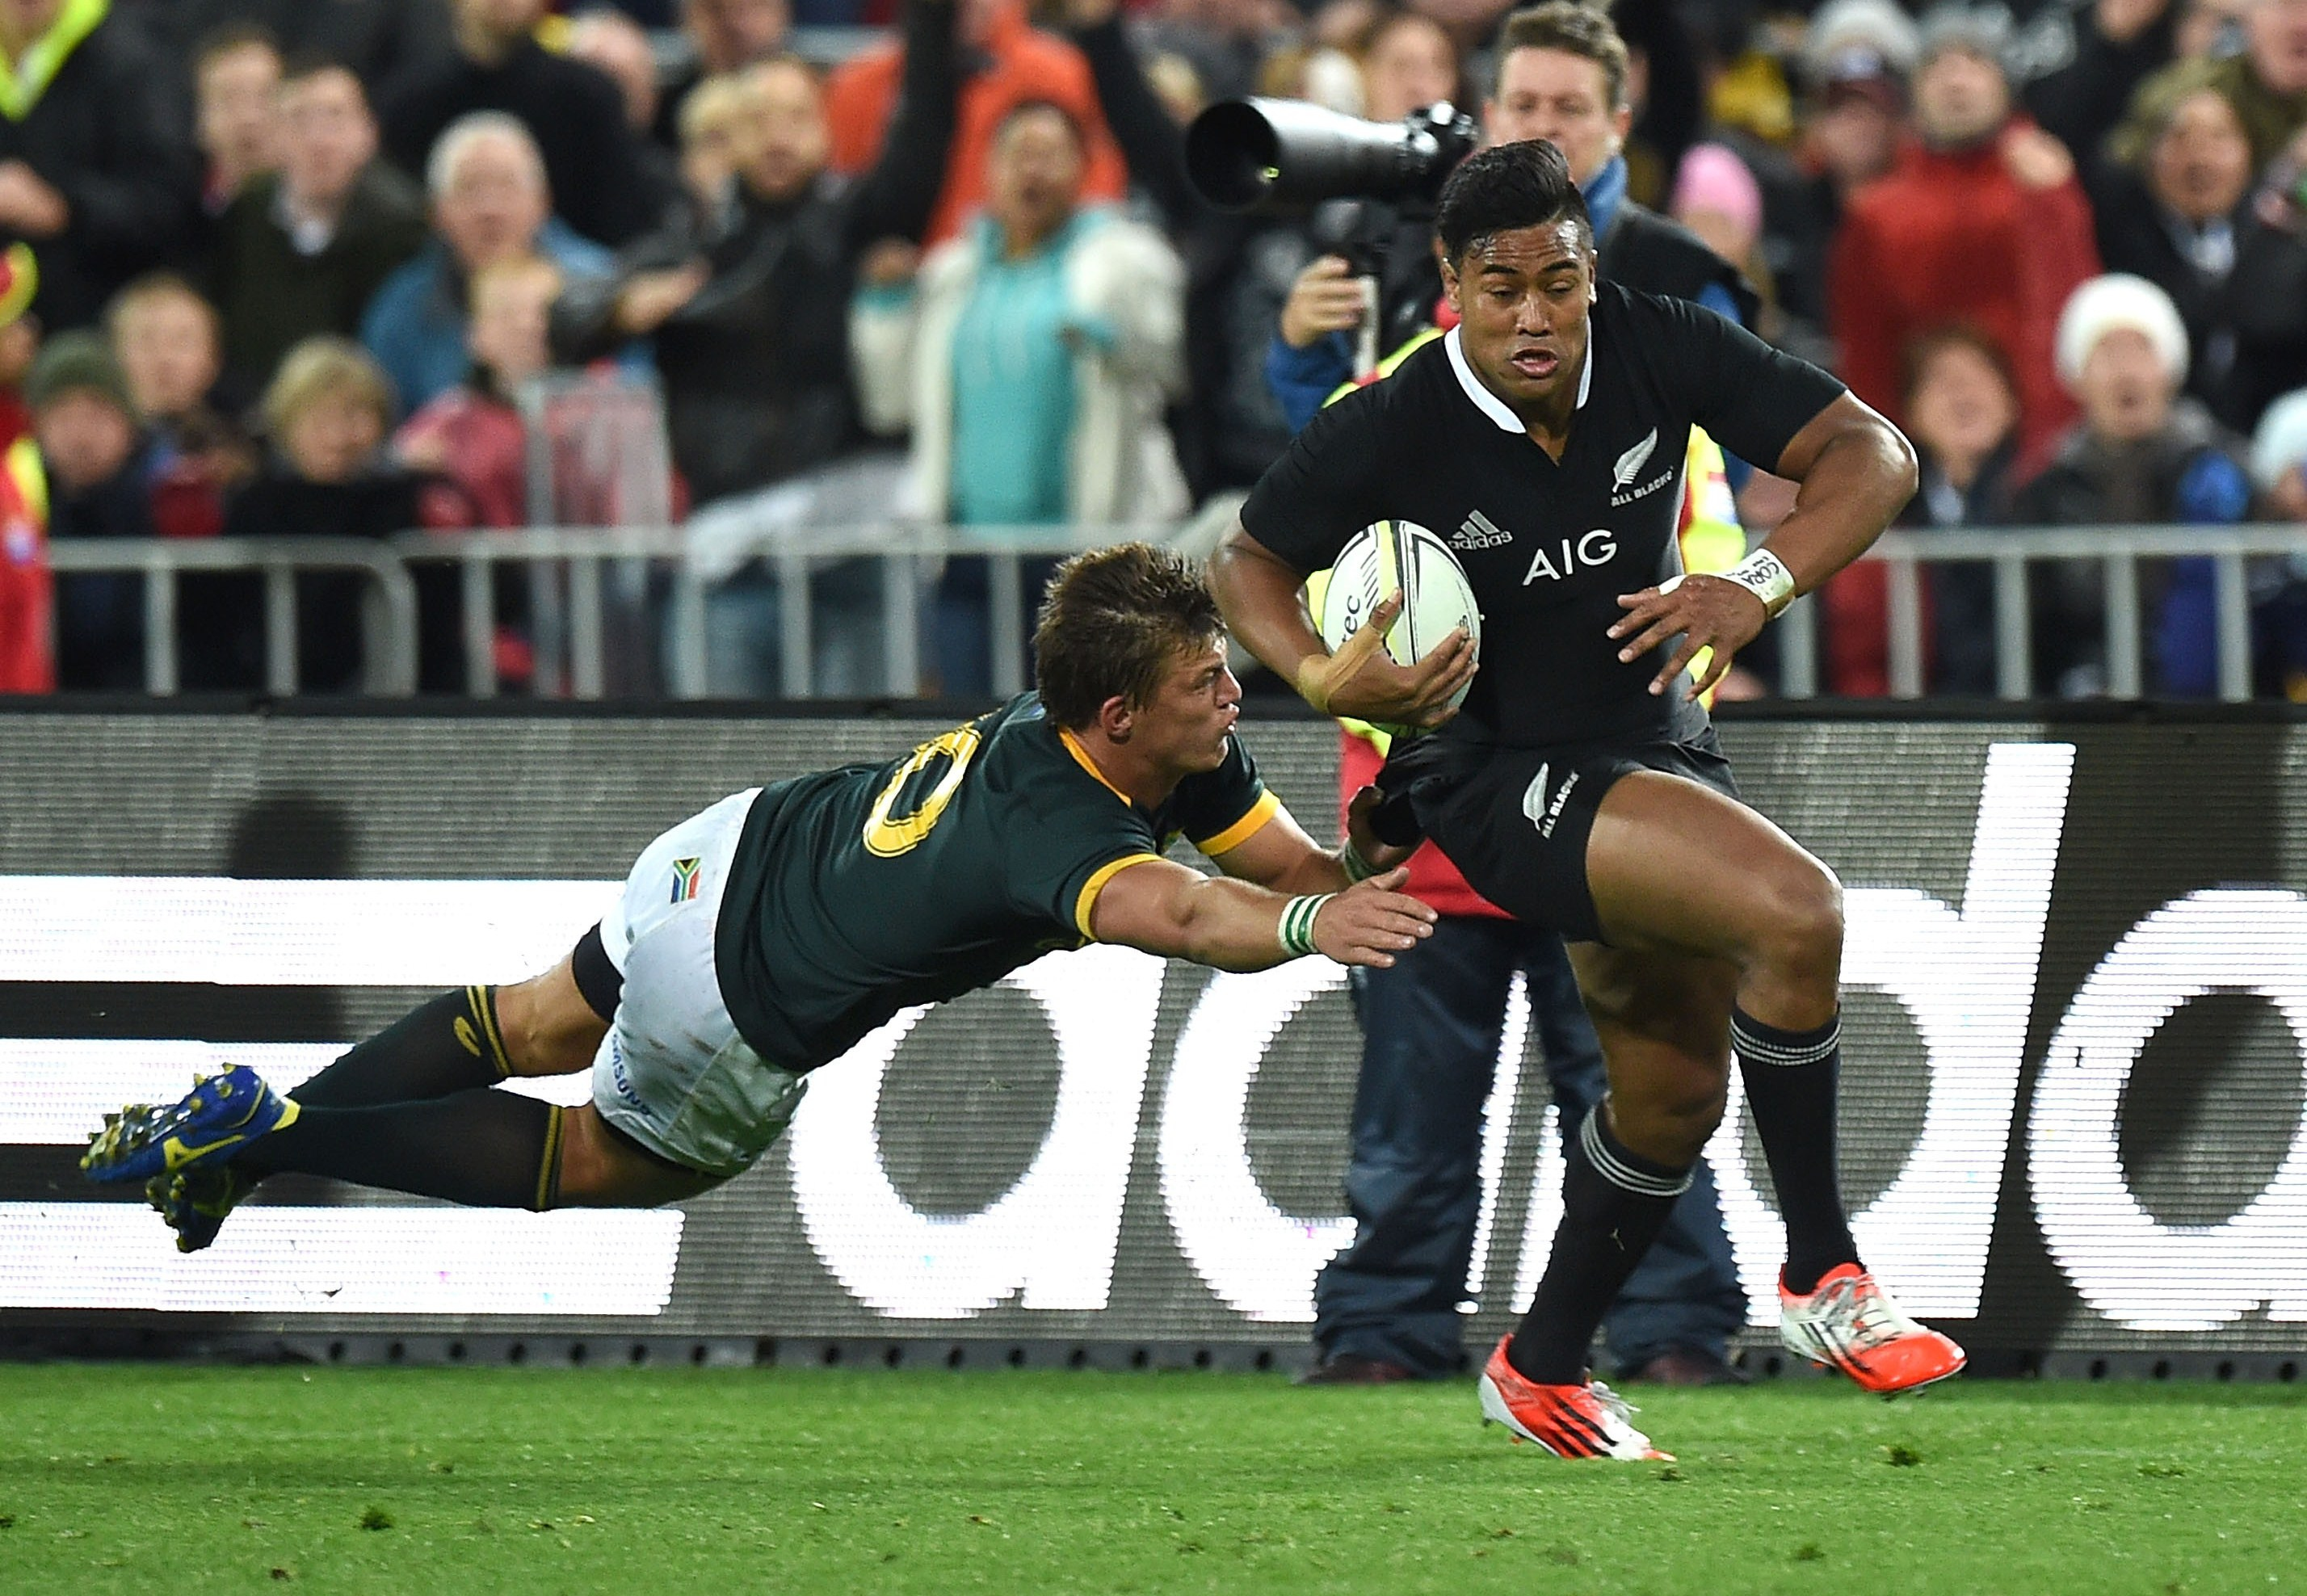 Julian Savea en un partido con los All Blacks. / Photo NZRU